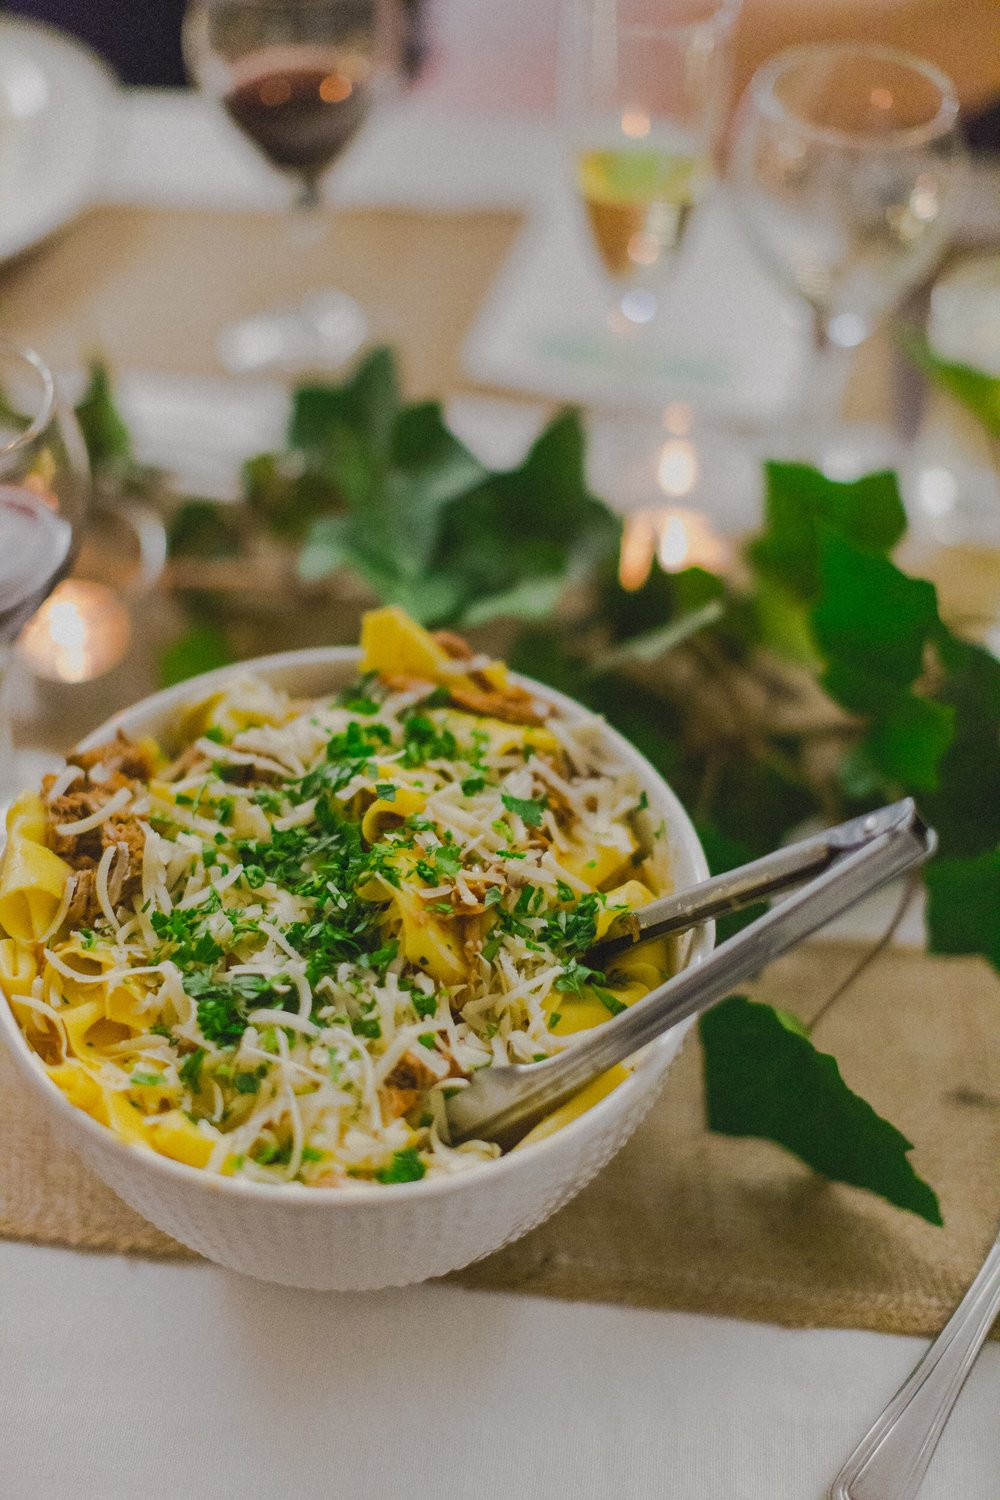 rooted event company co rooted table community banquet table the dalles oregon catering dinner supper club pop up restaurant wedding events place setting rootedtable hood river dallesport columbia river gorge food foodie eats eat the riv cafe event planner event coordinator farm to table